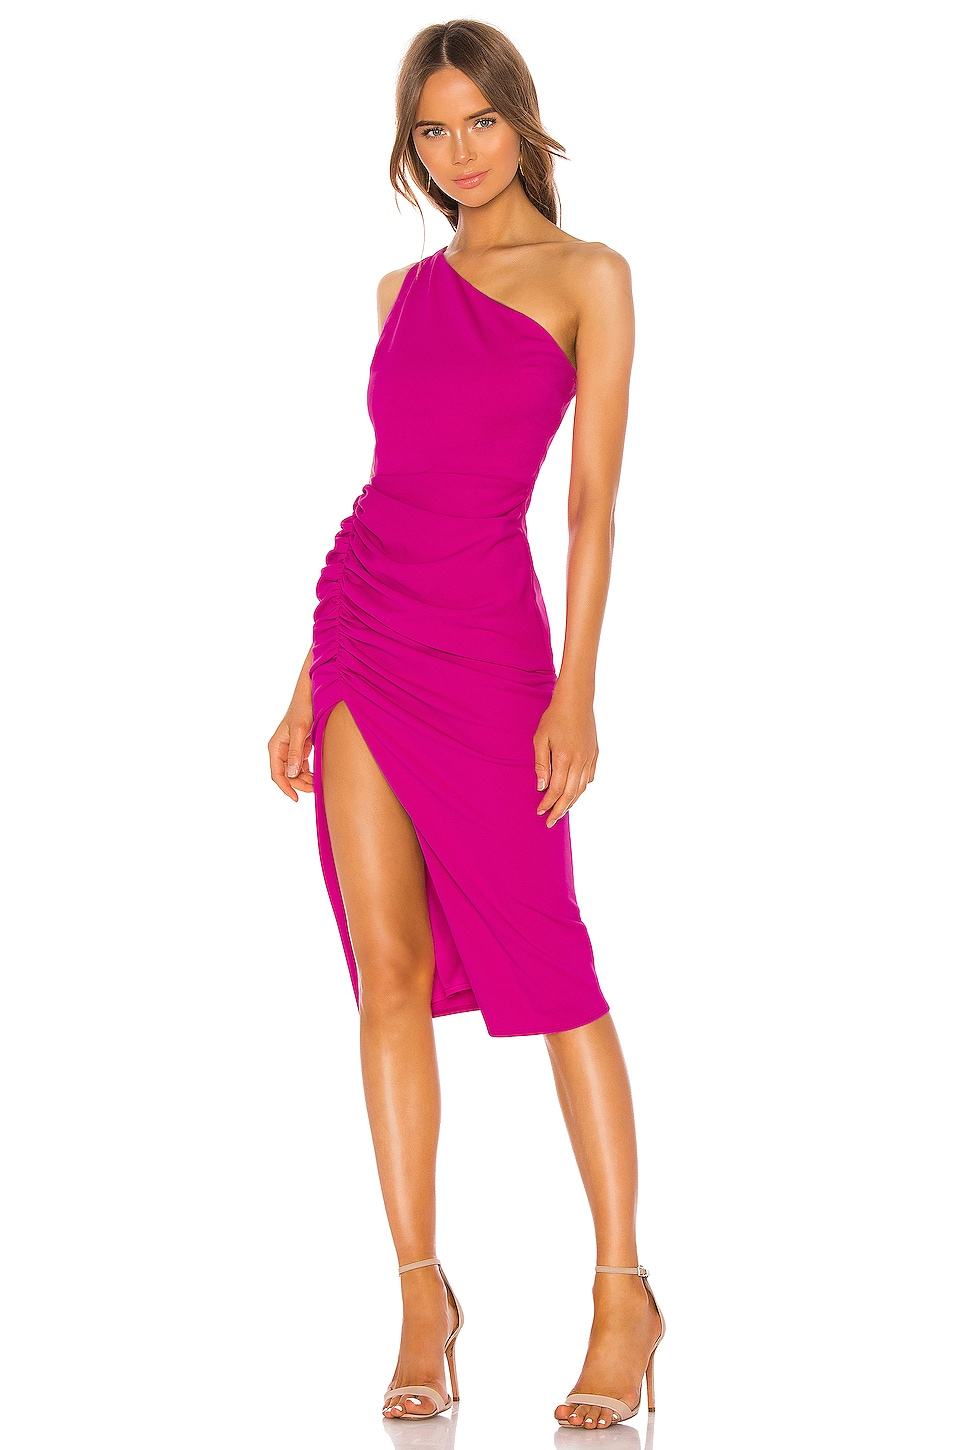 Katie May New Age Dress in Electric Pink